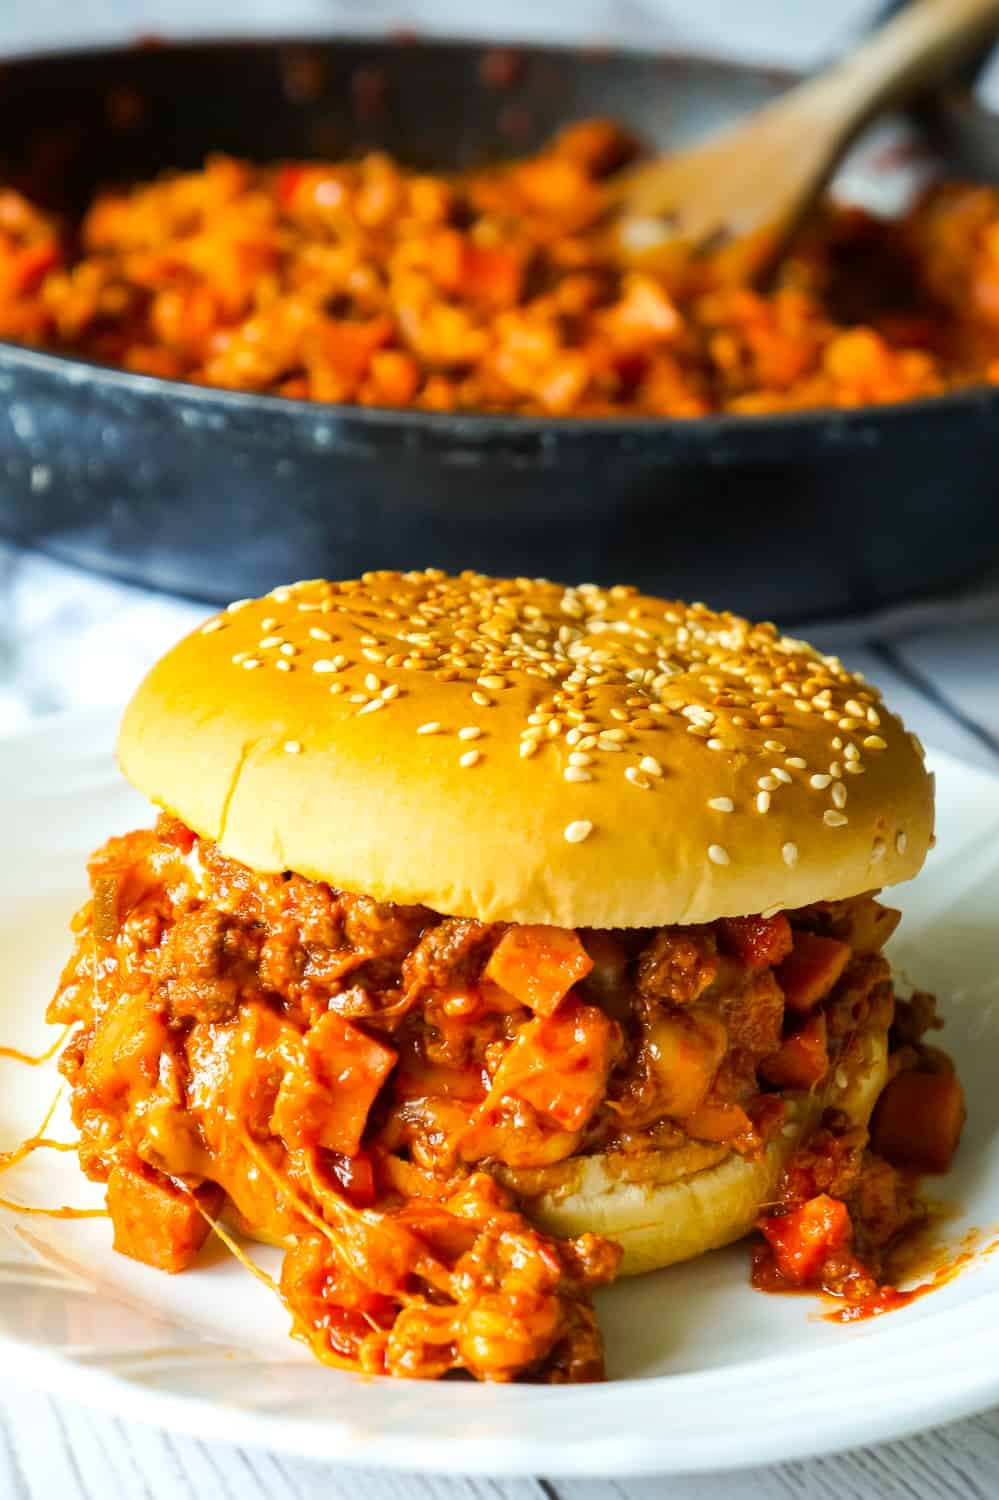 Chili Cheese Dog Sloppy Joes are an easy ground beef dinner recipe perfect for weeknights. These homemade sloppy joes are loaded with chopped wieners, shredded cheese, and onions all tossed in a chili sauce with a bit of a kick.